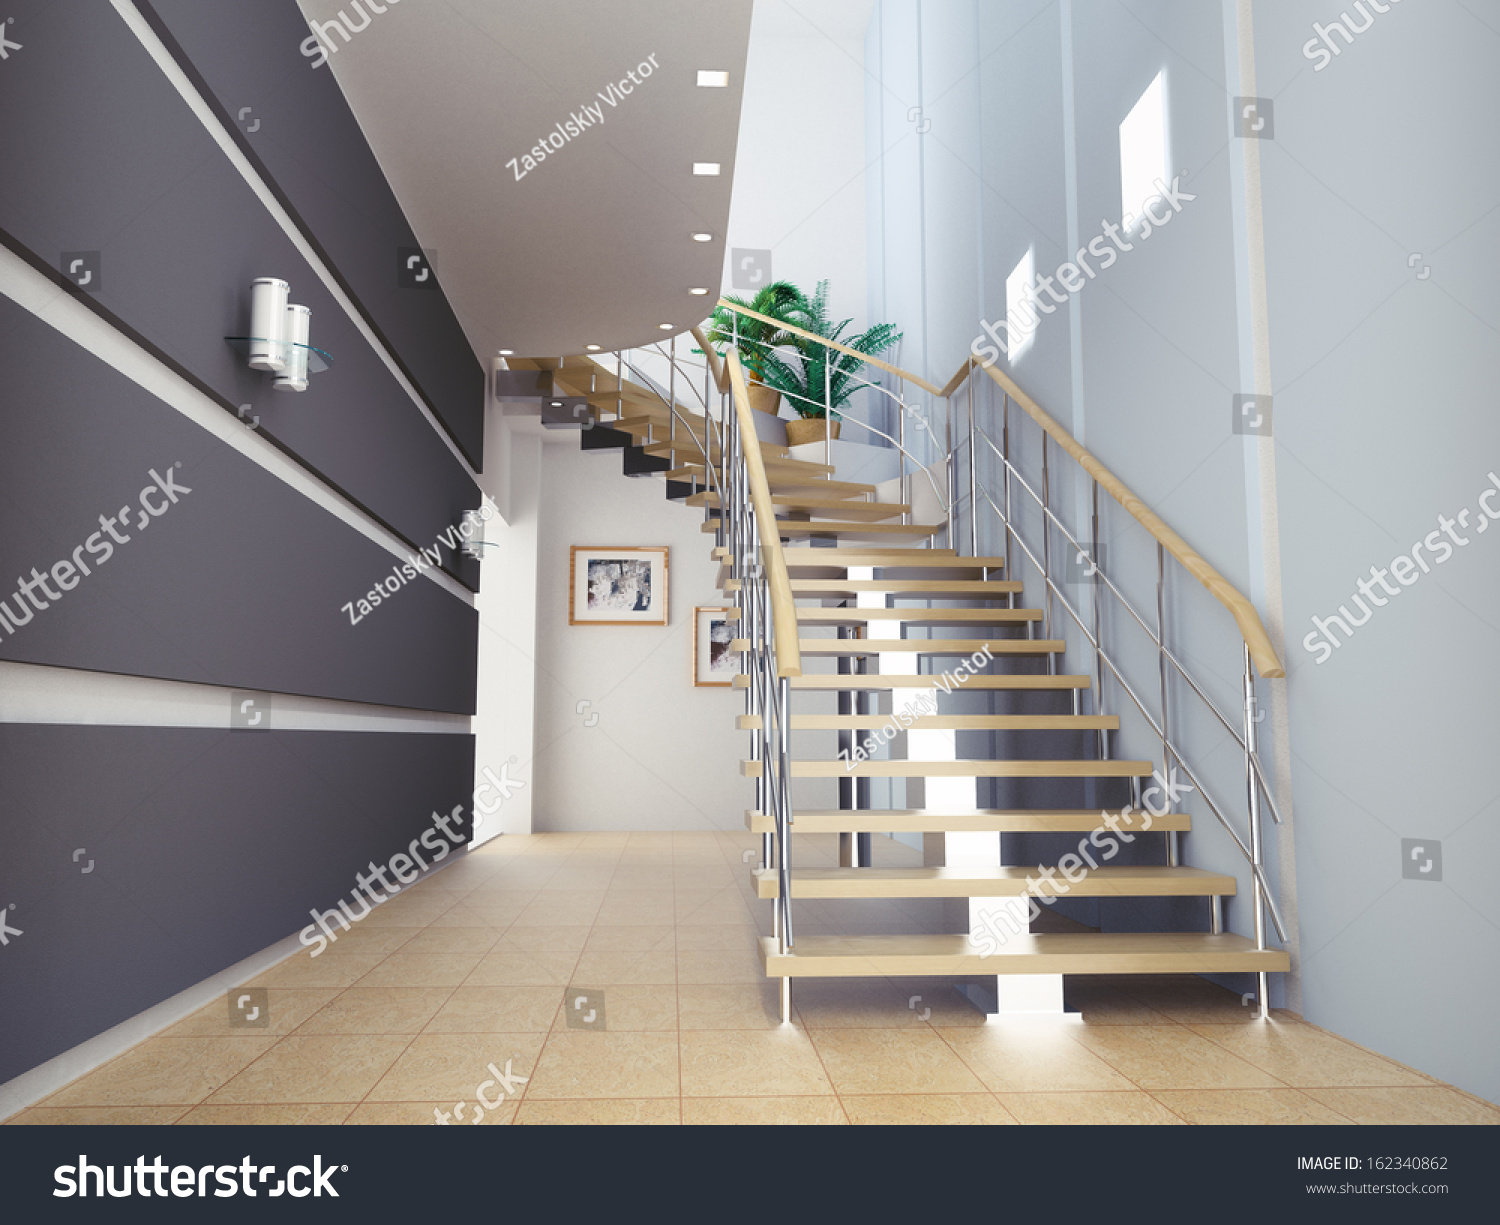 Interior of stylish modern house hall staircase view